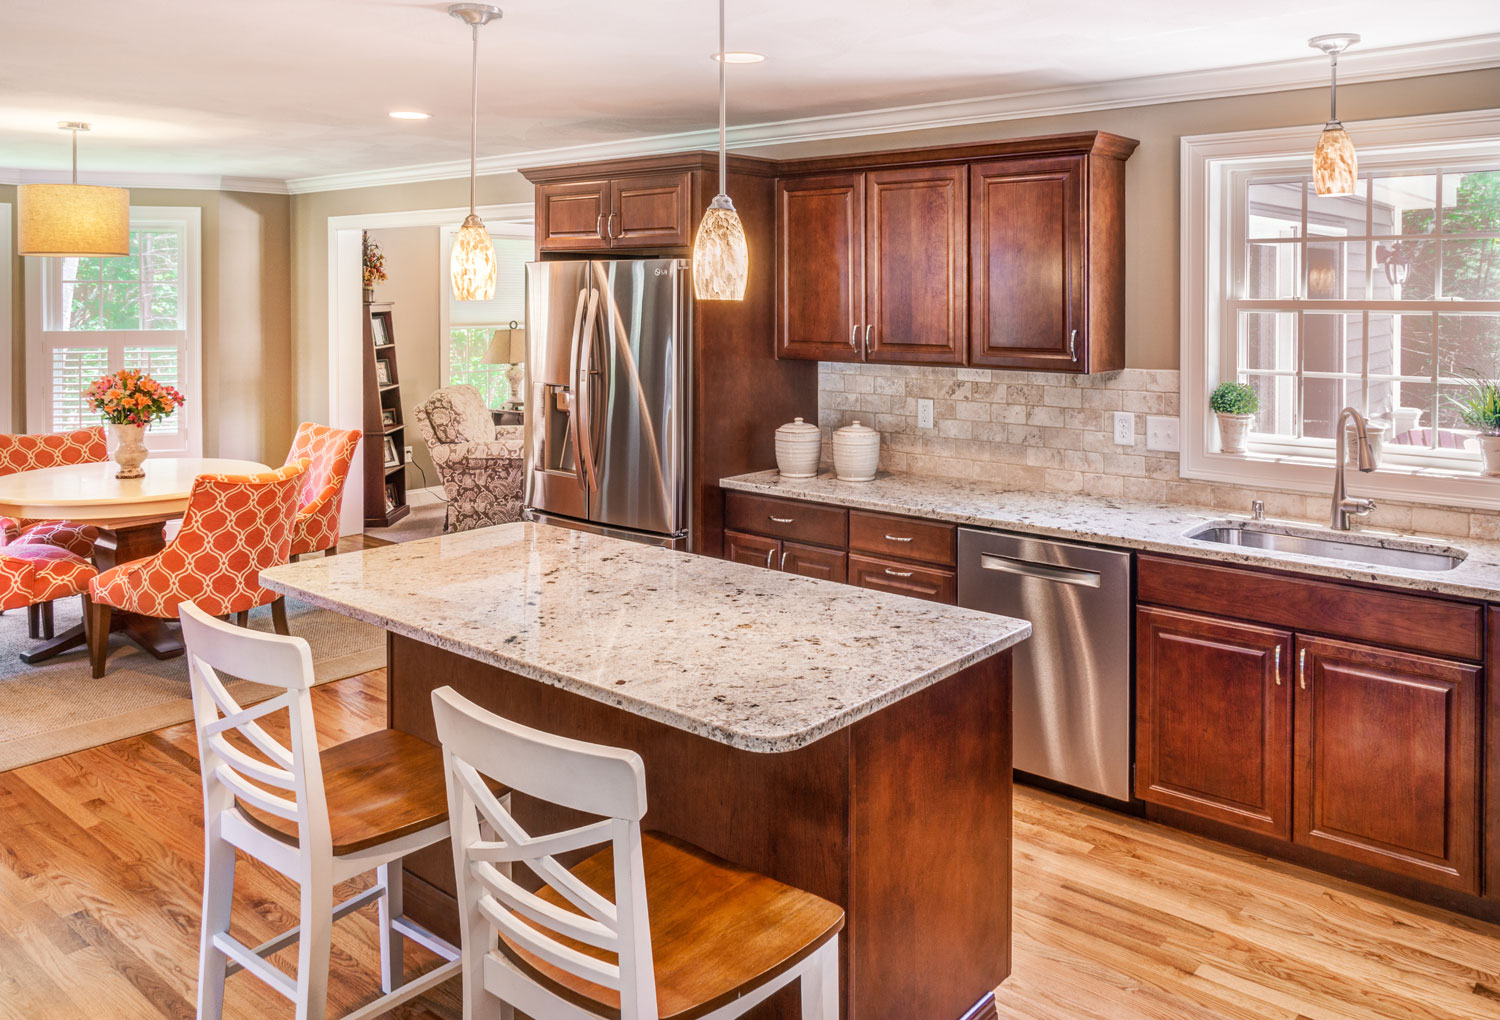 This kitchen has new golden beach granite countertops and tumbled stone backsplash and the appliances are by Bosch.